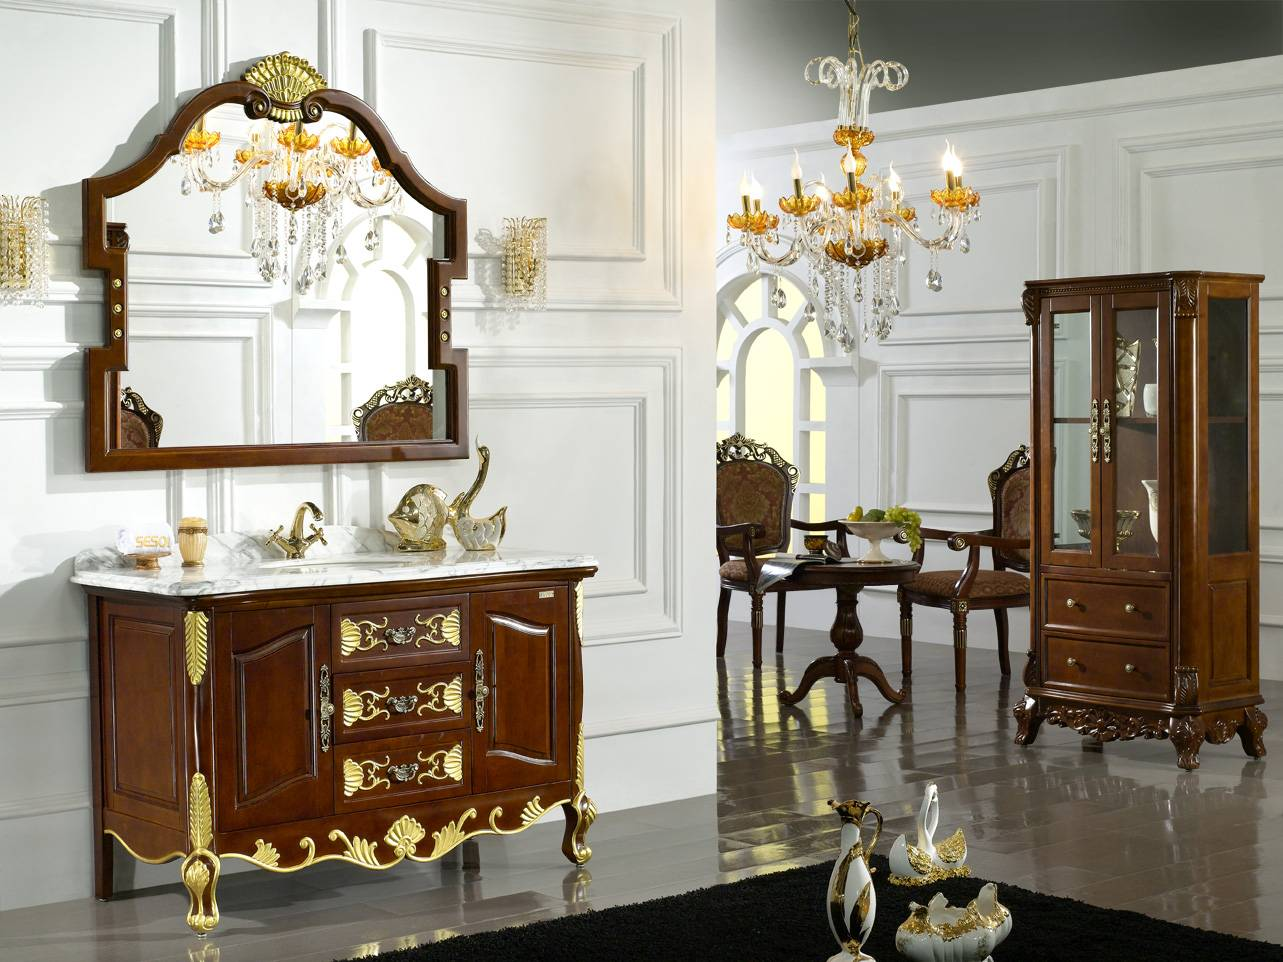 Gold Plated Luxury Bathroom Vanity Cabinets Foshan Shunde District Shengshioulin Sanitary Ware